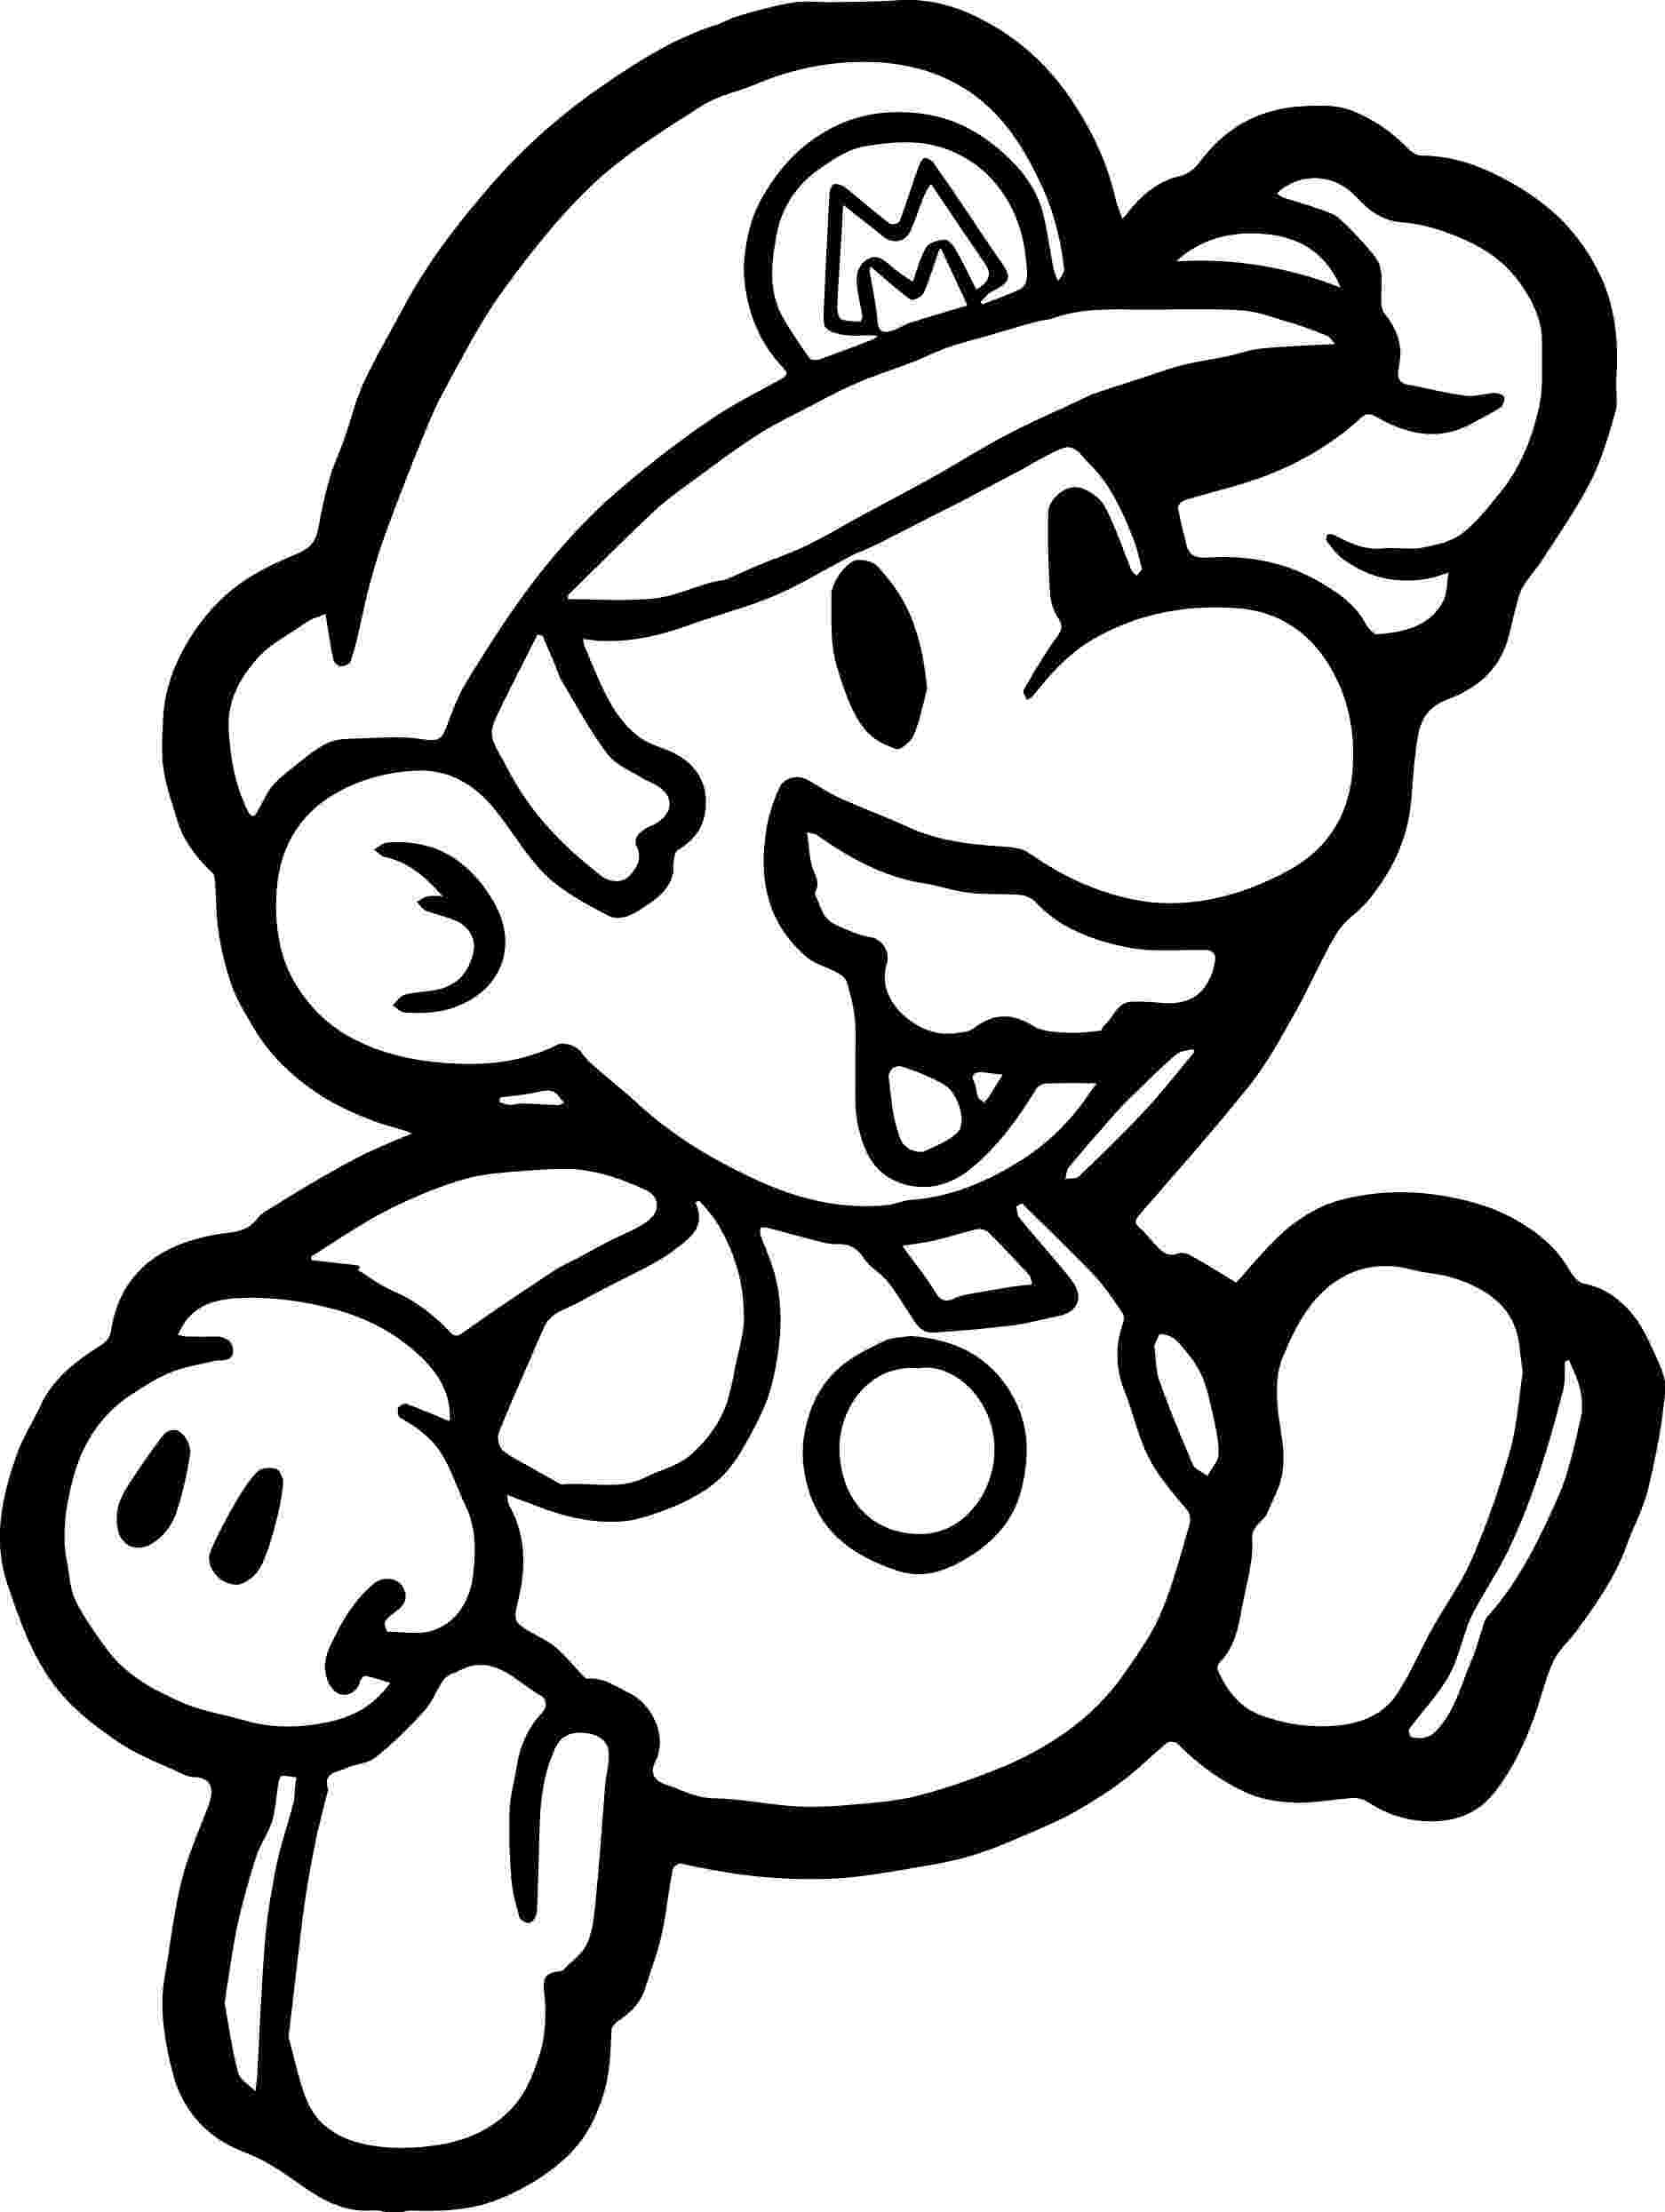 paper mario coloring page paper mario and luigi coloring page free printable mario page paper coloring